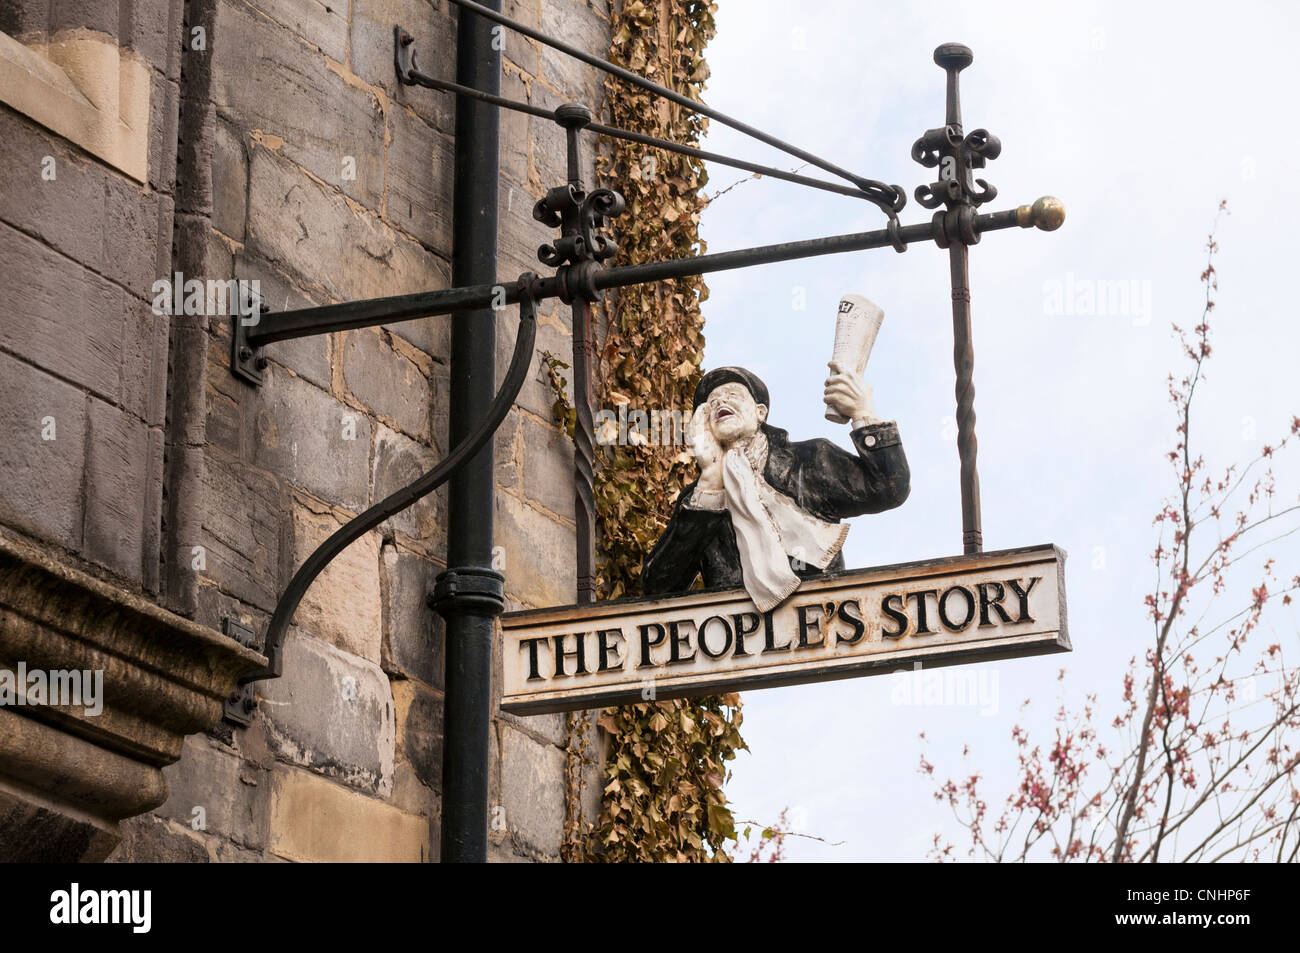 The People's Story - Edinburgh Council's Museum. - Stock Image